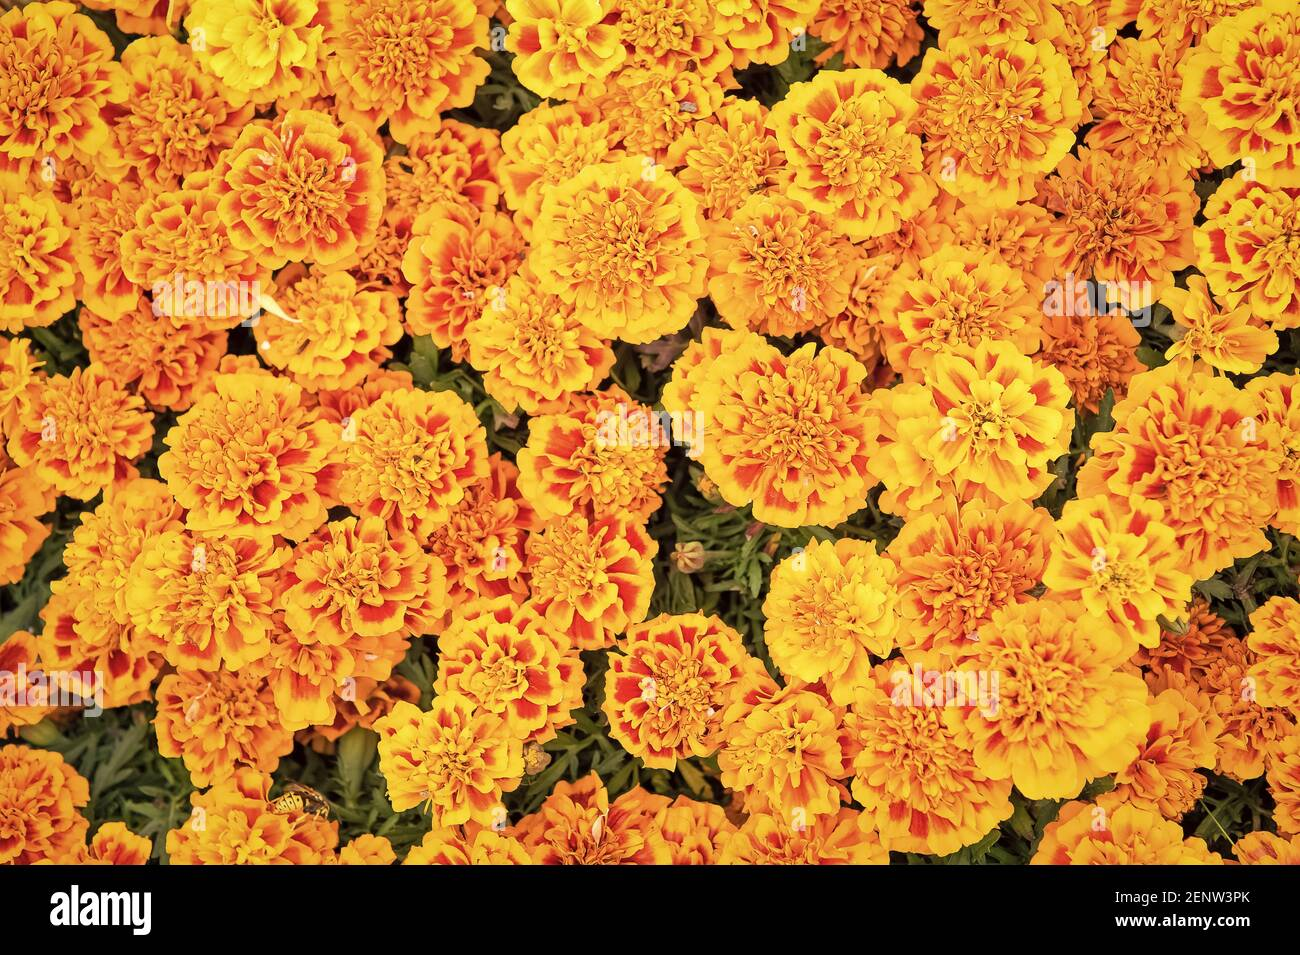 Blooming texture. Beautiful orange red marigold flowers leaves background pattern. Marigold flowers. Floral background. Botany and flora. Tagetes top view. Spring nature. Flowers in field. Stock Photo